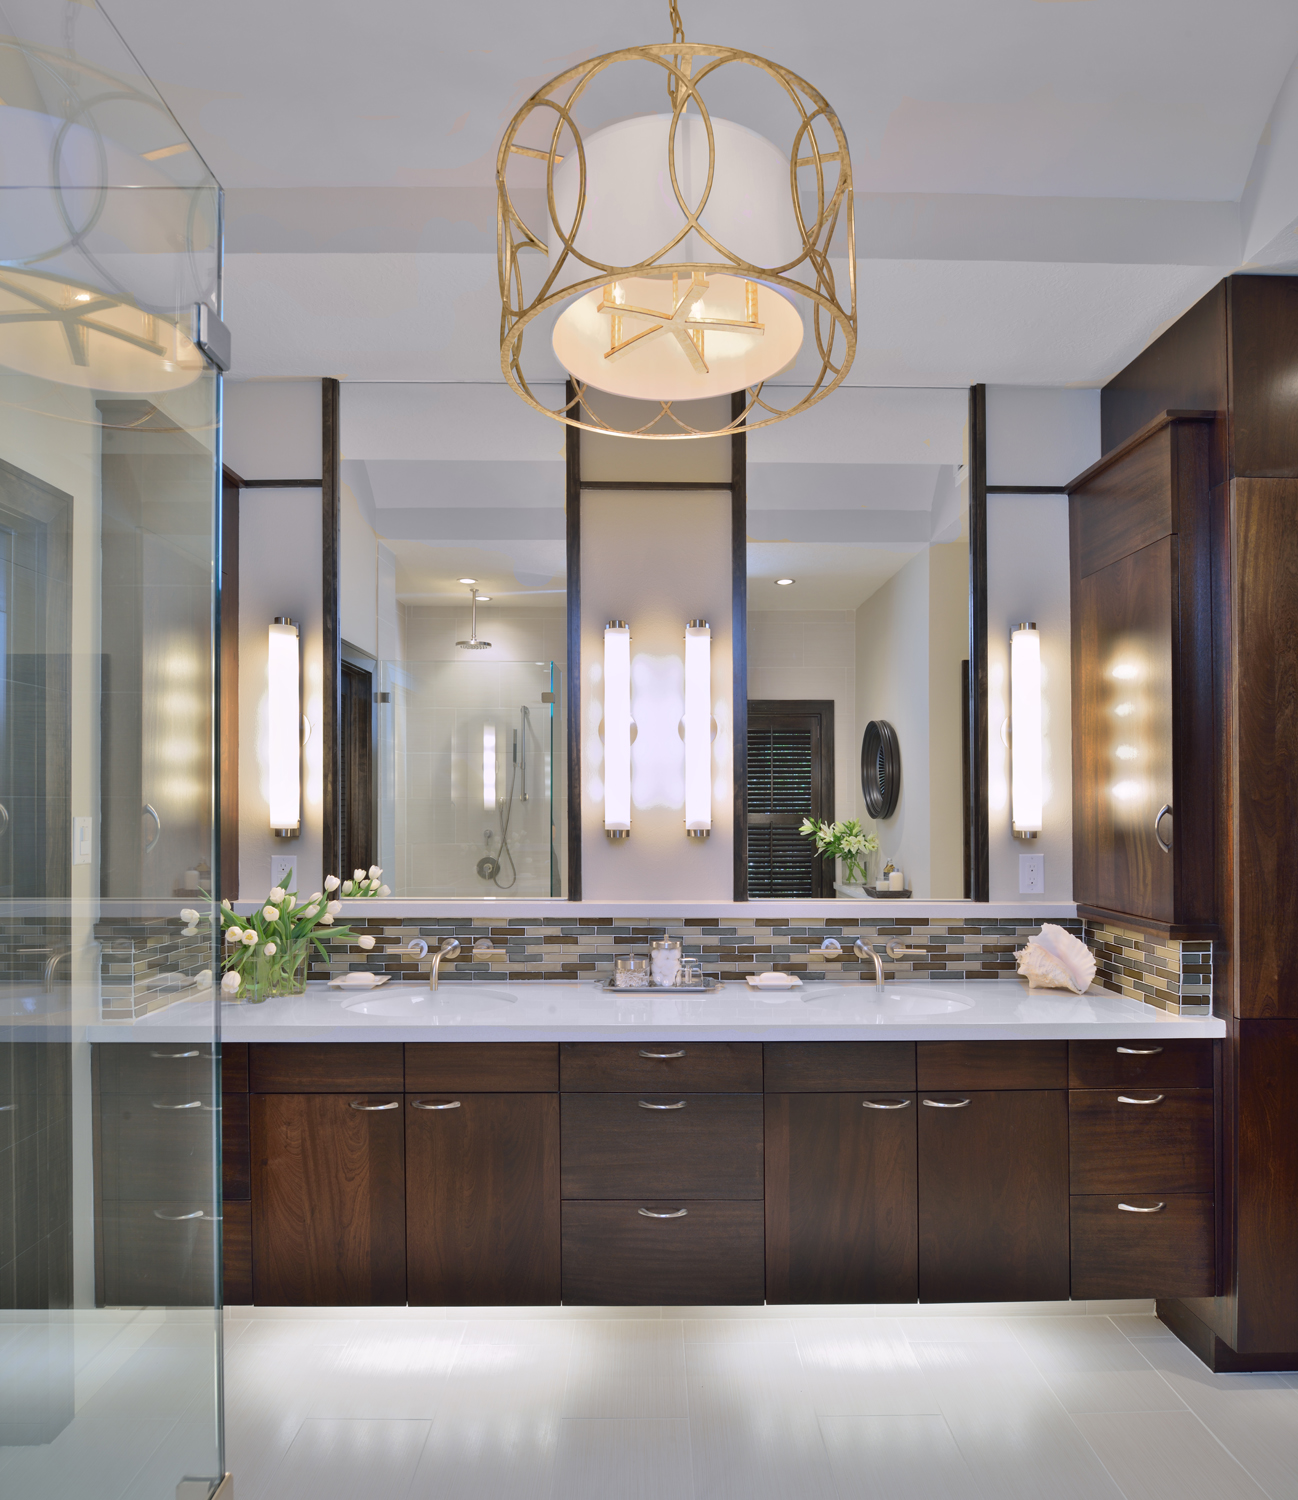 Ideal Tall Mirrors Will Make Your Bathroom Grow u Glow Here us